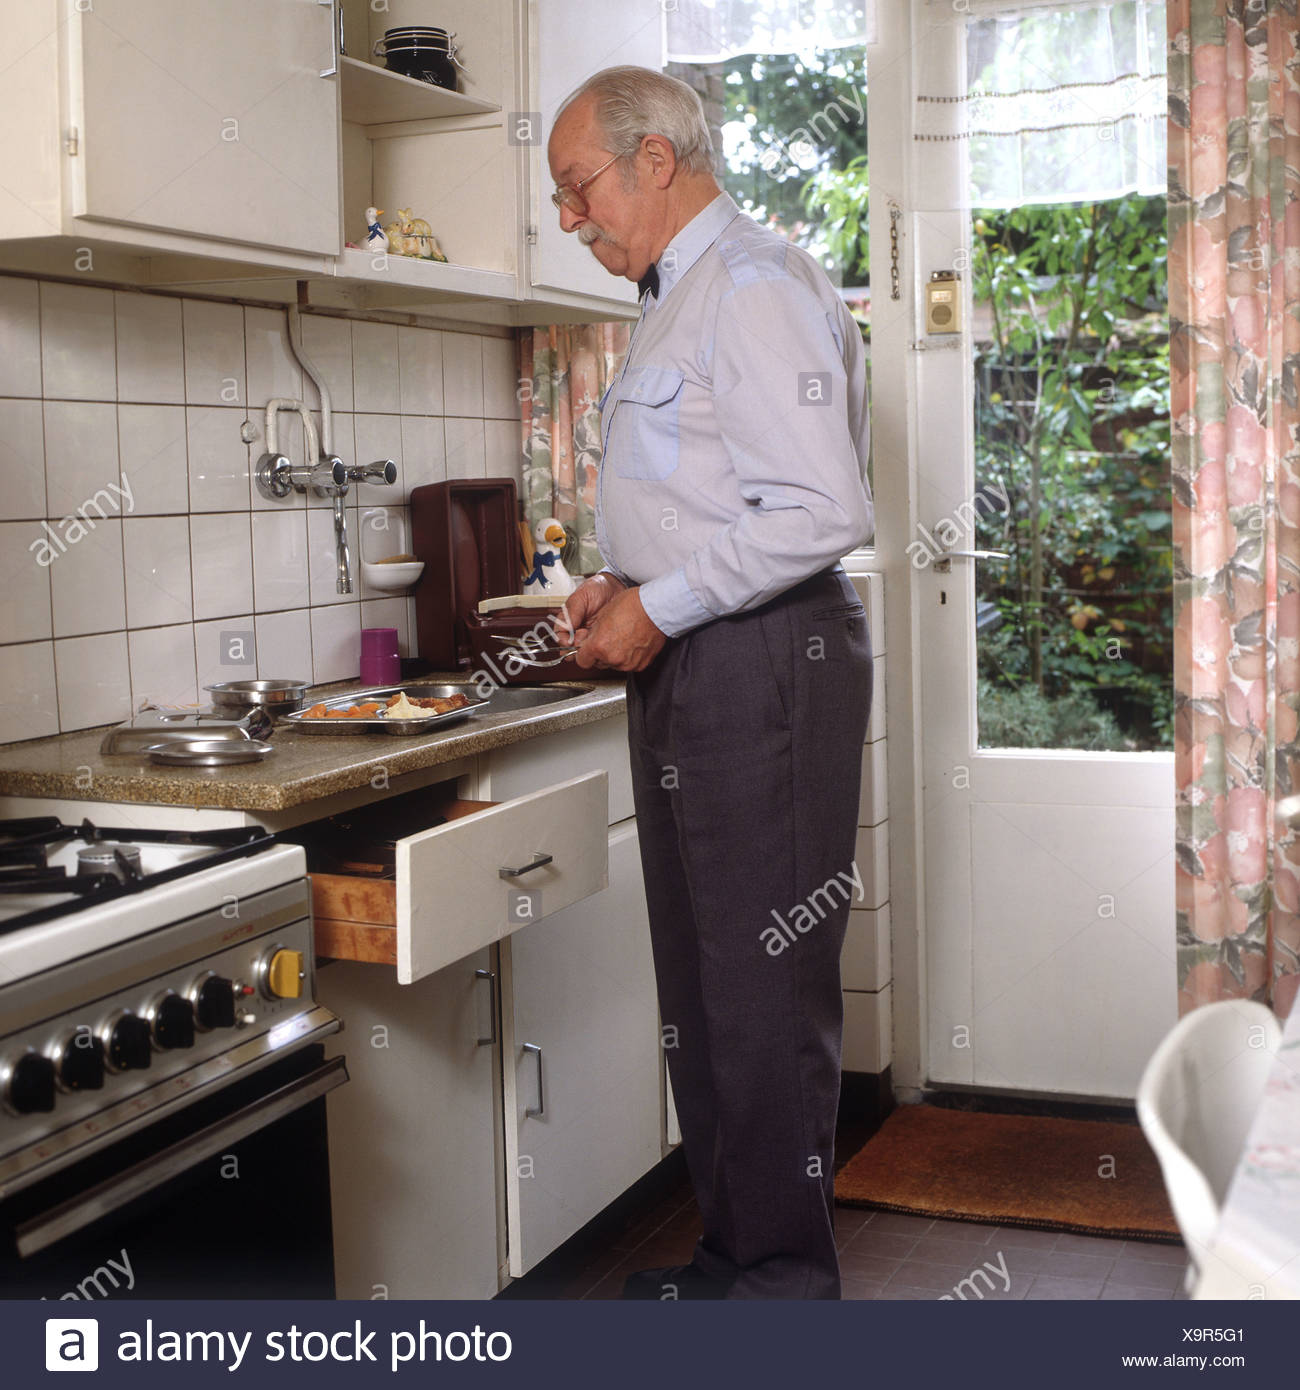 Meals on Wheels programs - Stock Image